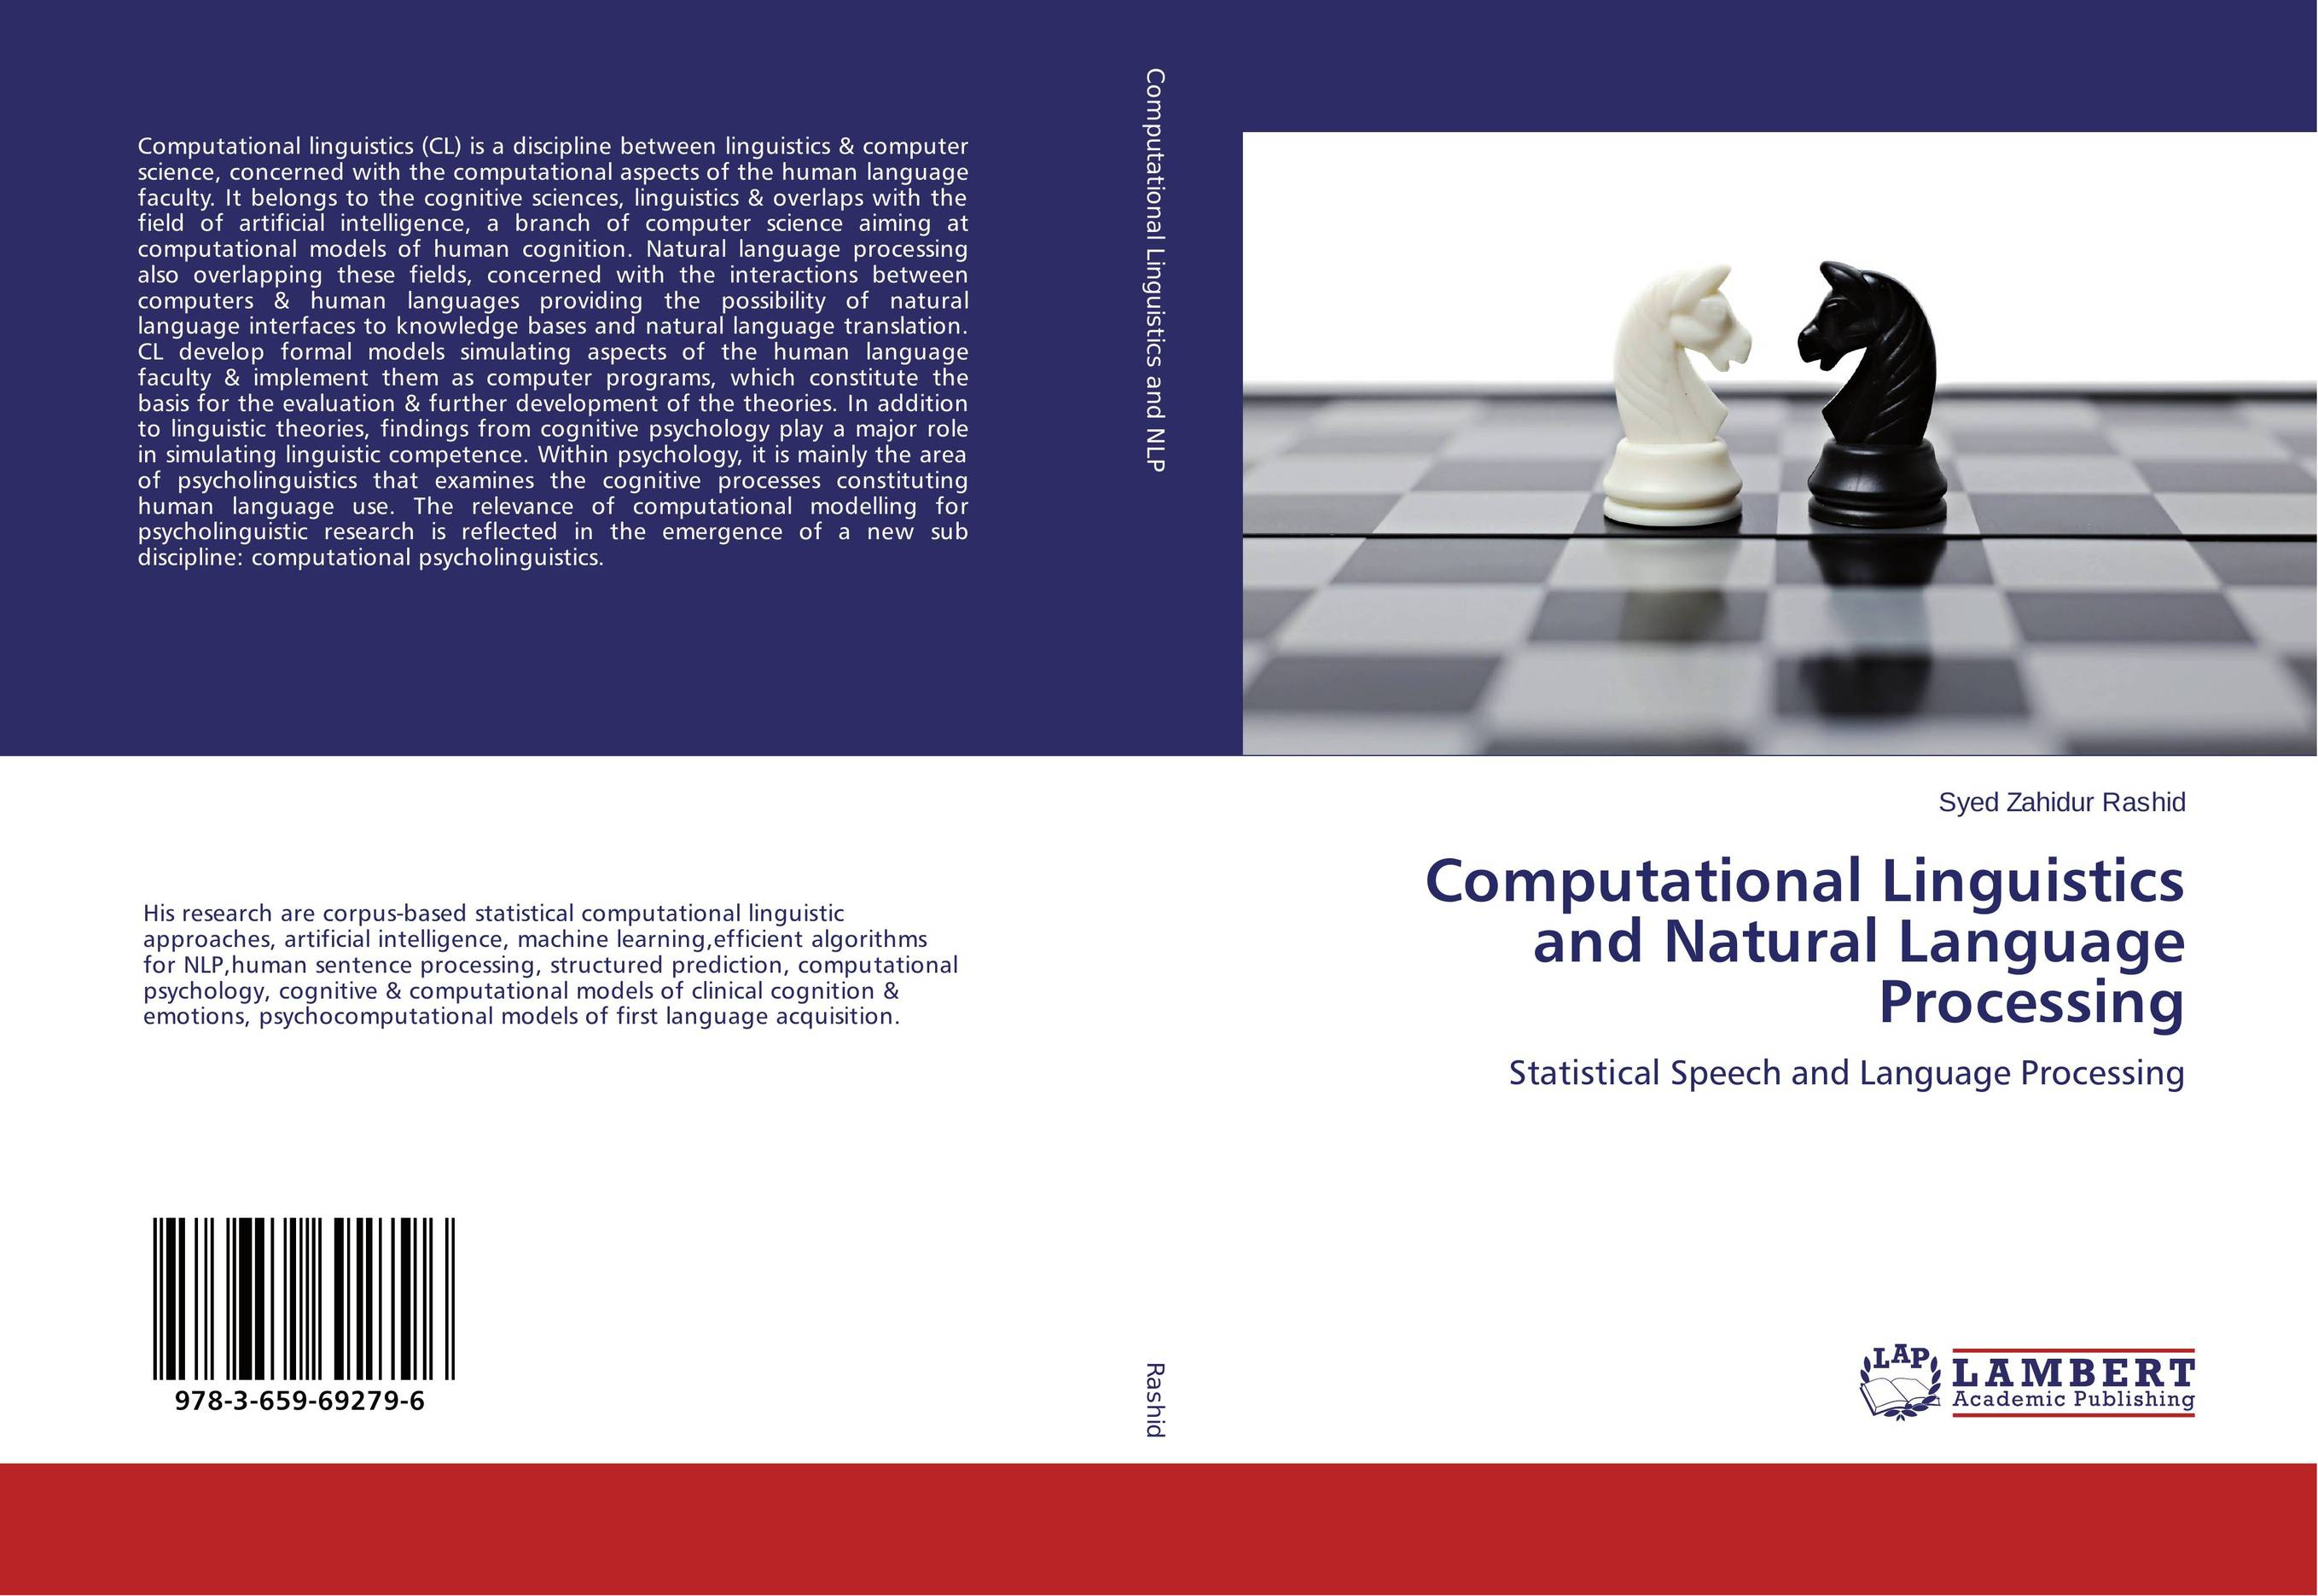 Computational Linguistics and Natural Language Processing web personalization models using computational intelligence